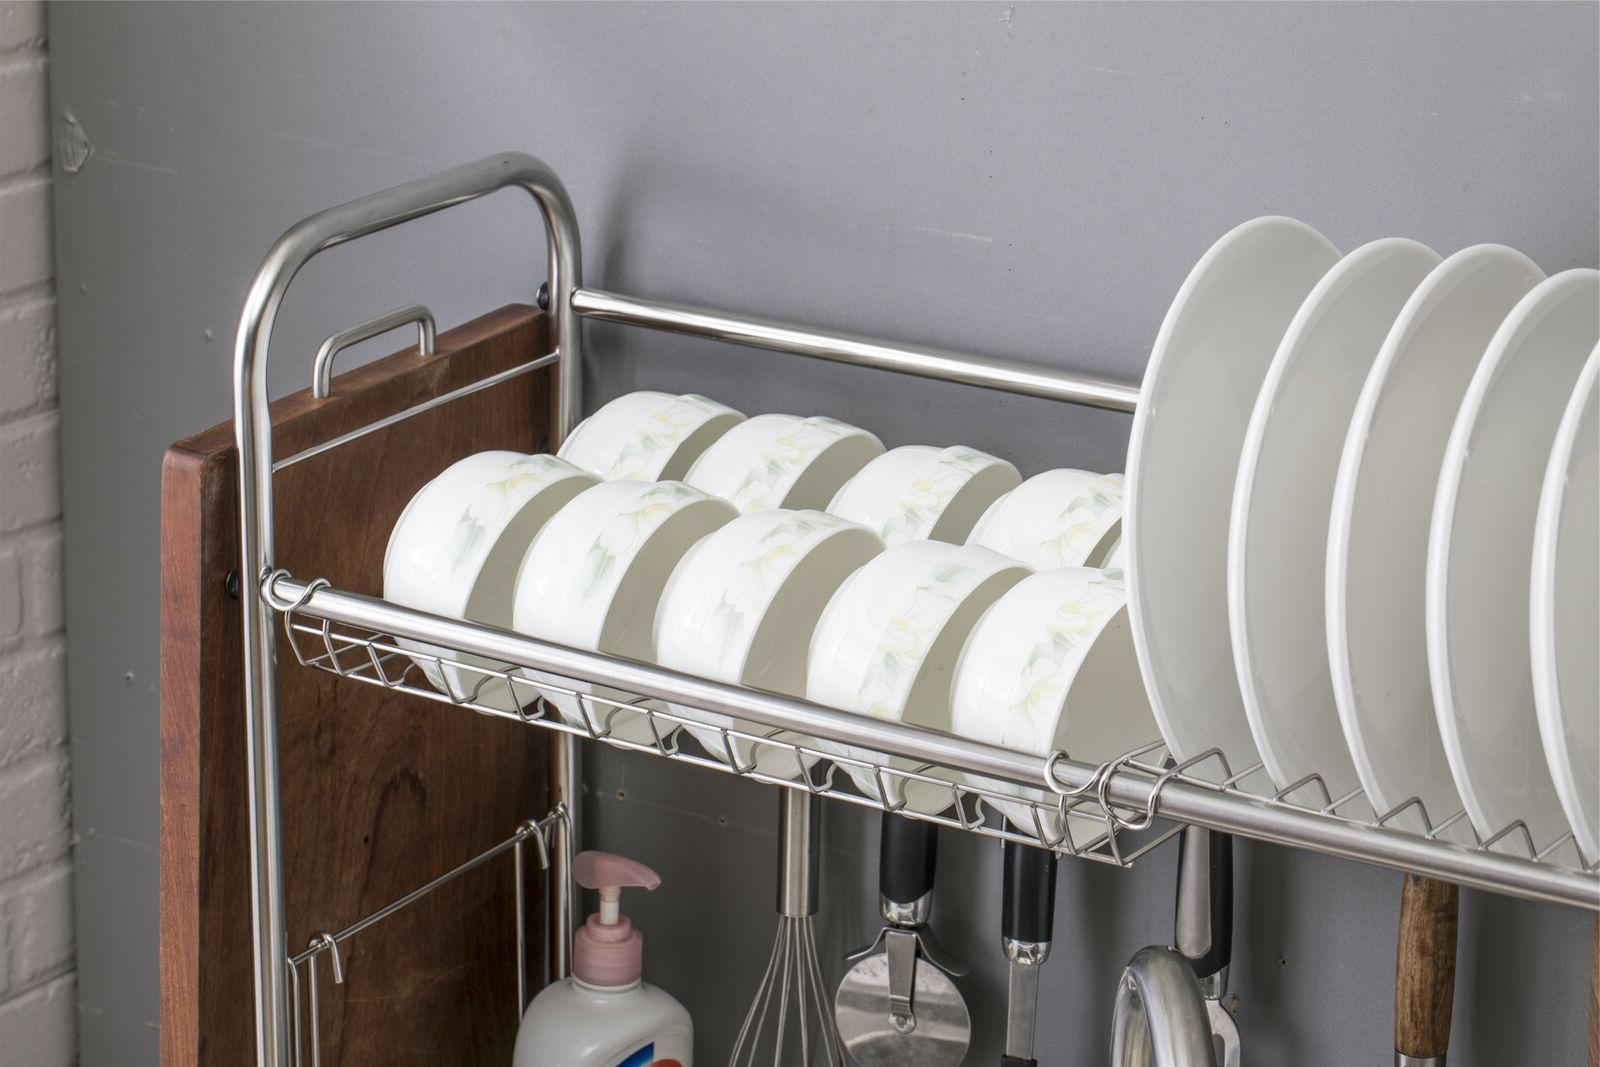 Single Dish Racks Over Sink Drying with